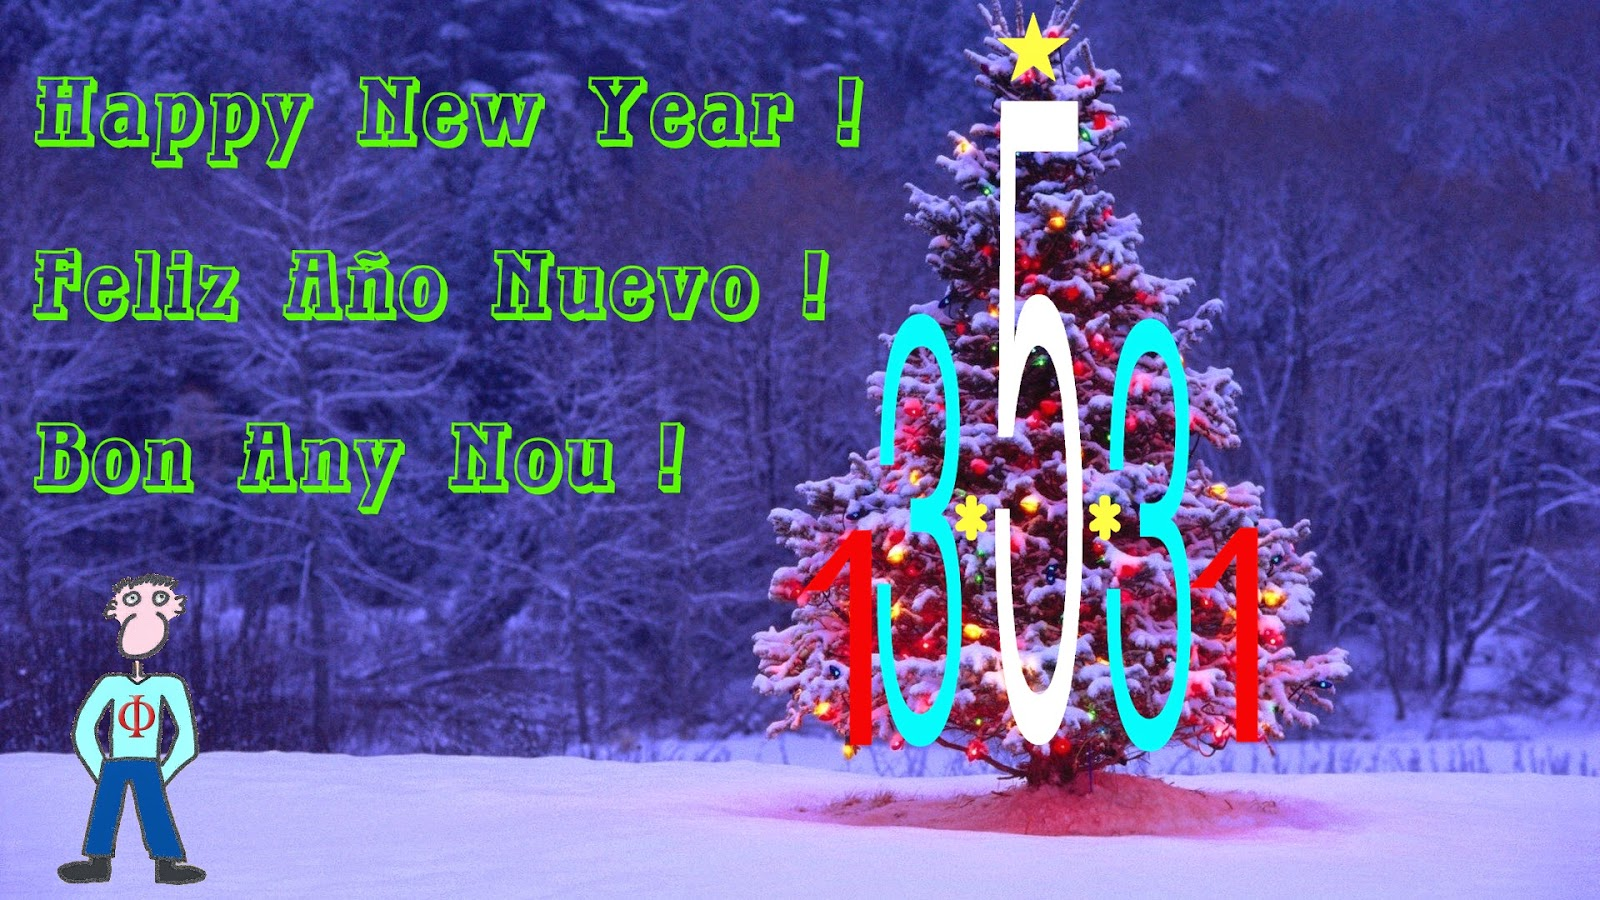 I wish you a Happy New Year 2015.